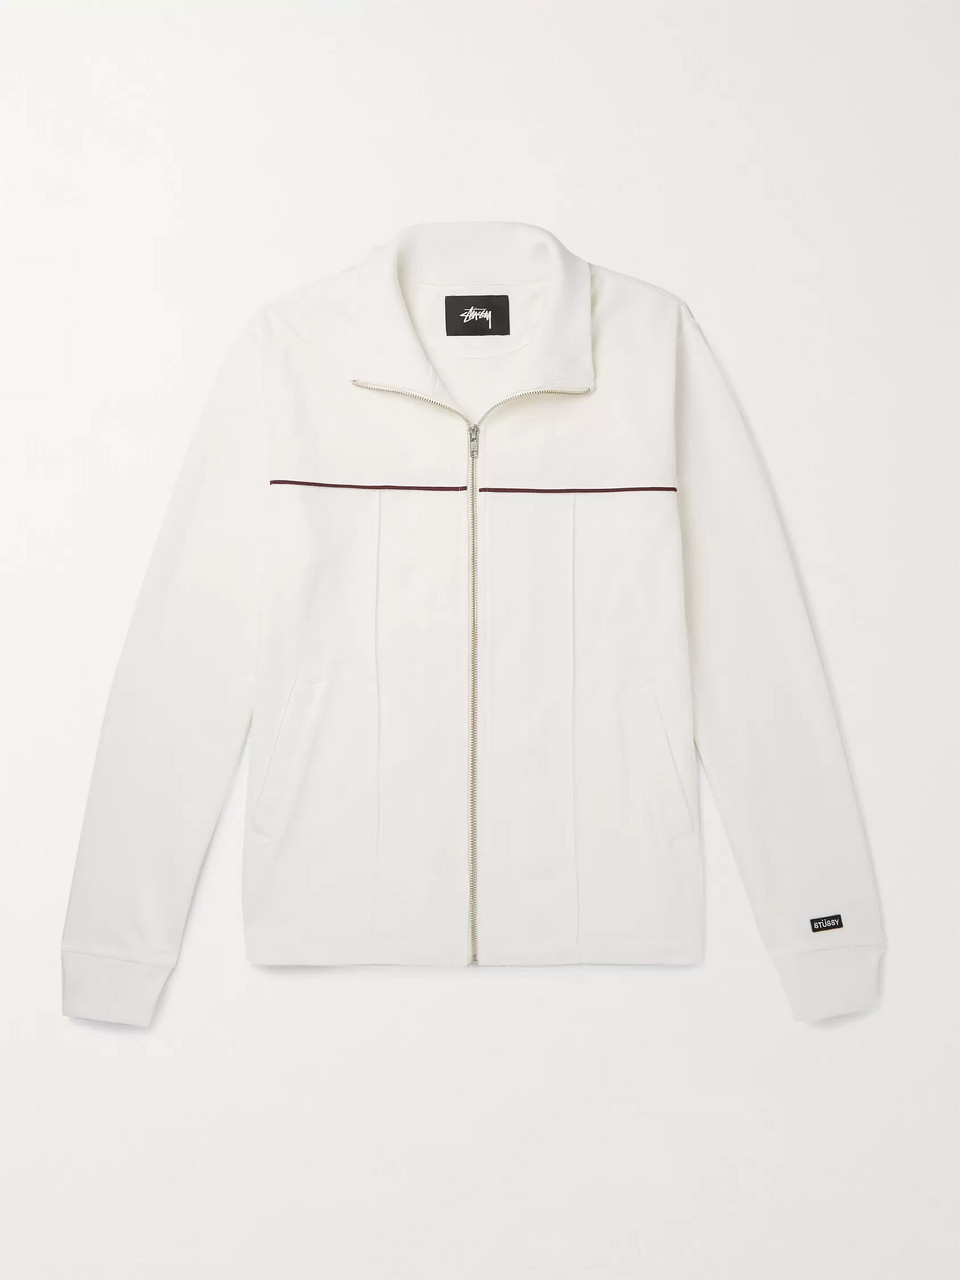 Stüssy Piped Cotton-Blend Piqué Zip-Up Sweatshirt